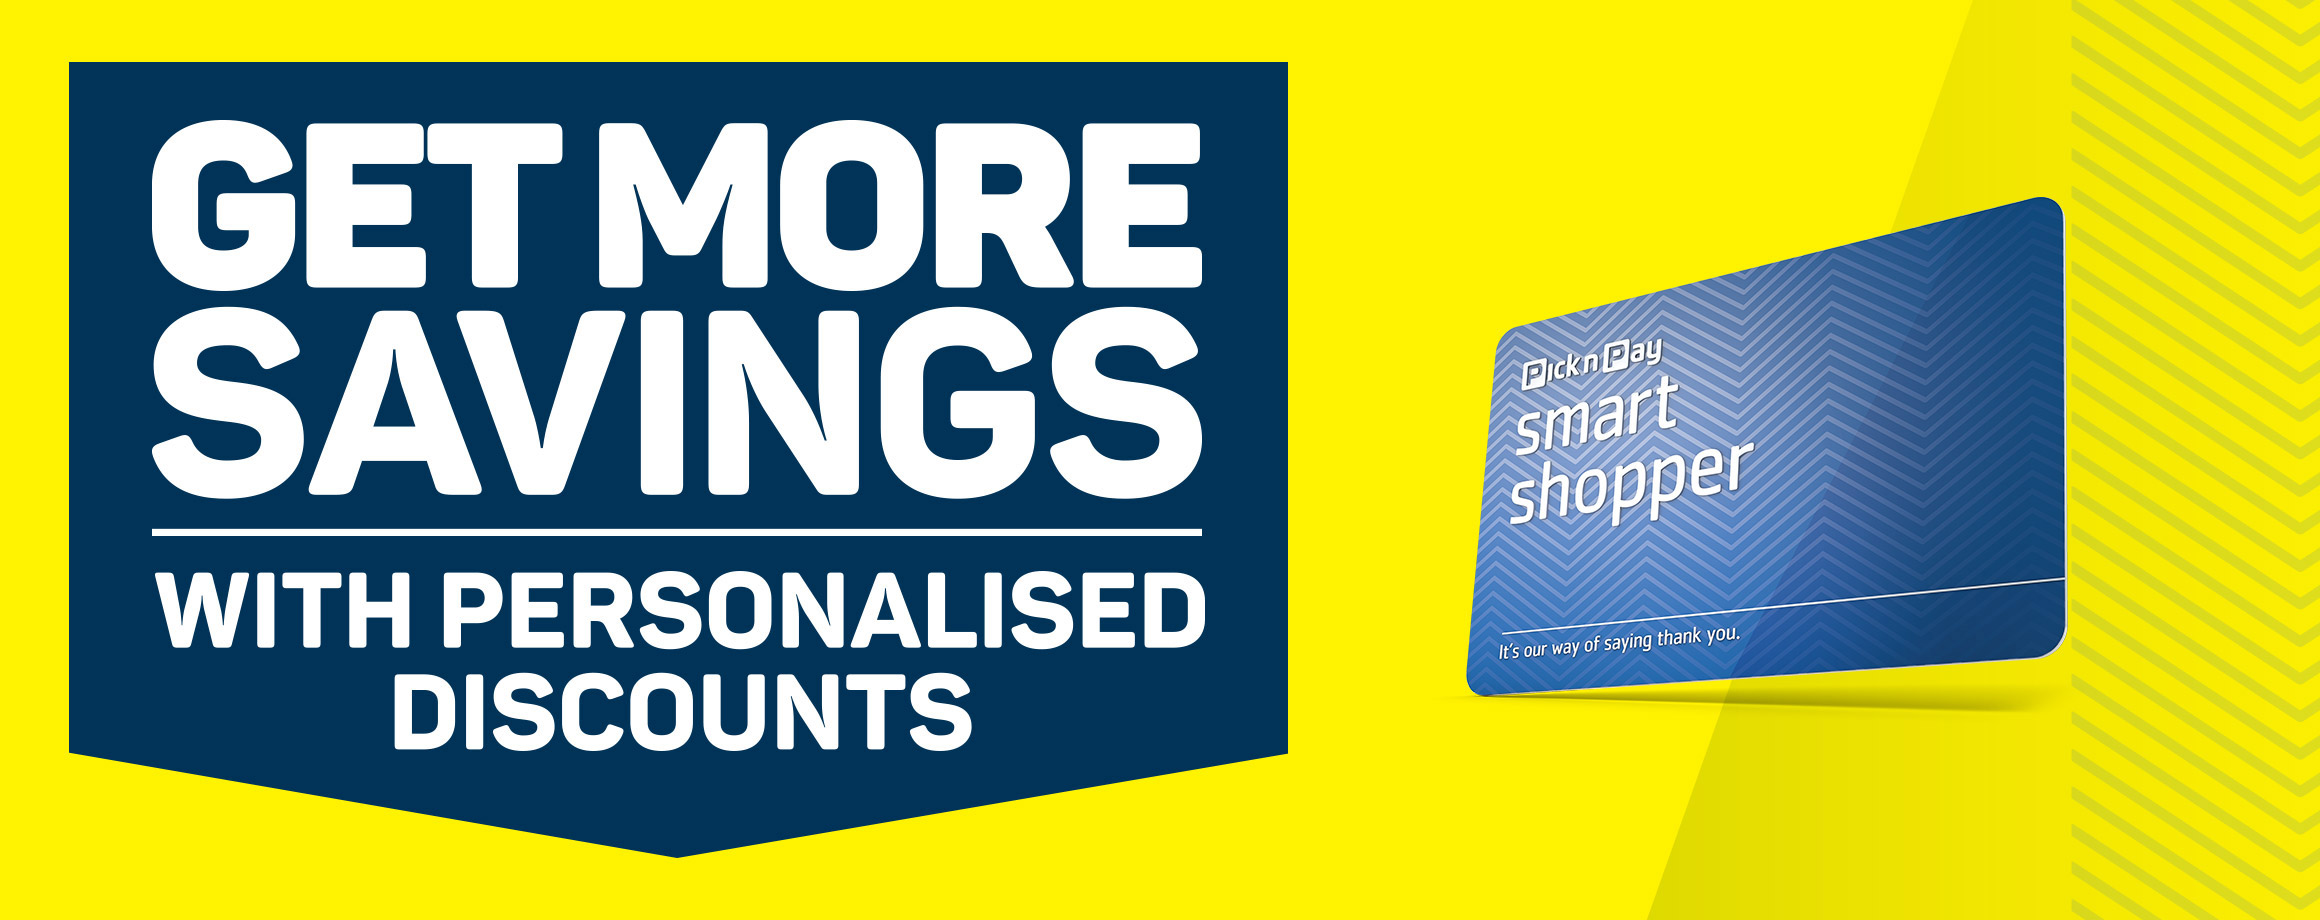 Get more savings with personalised discounts